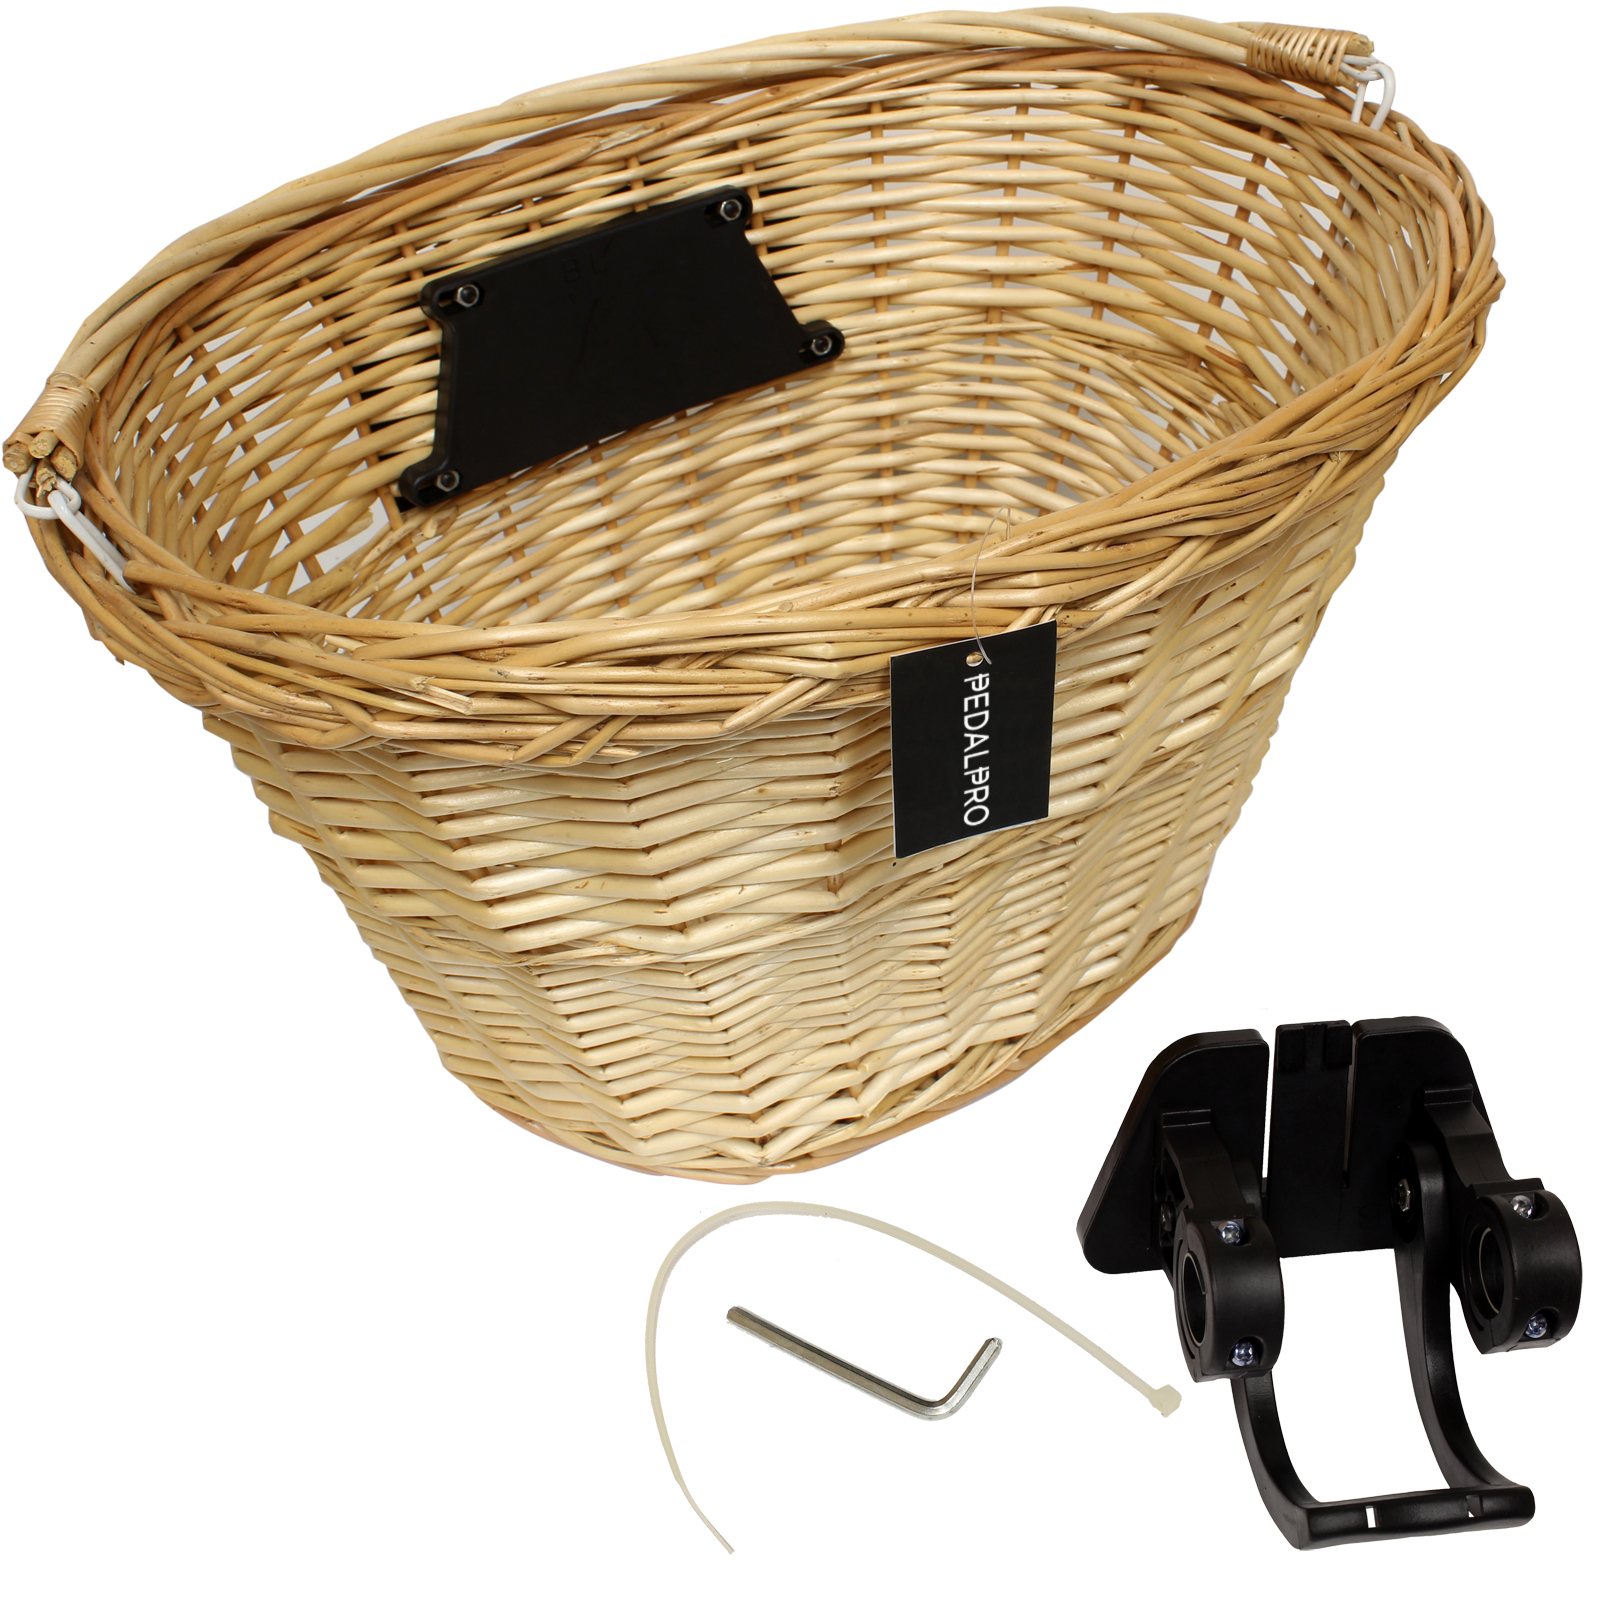 Wicker Bike Basket With Handle : Pedalpro quick release bicycle wicker ping basket